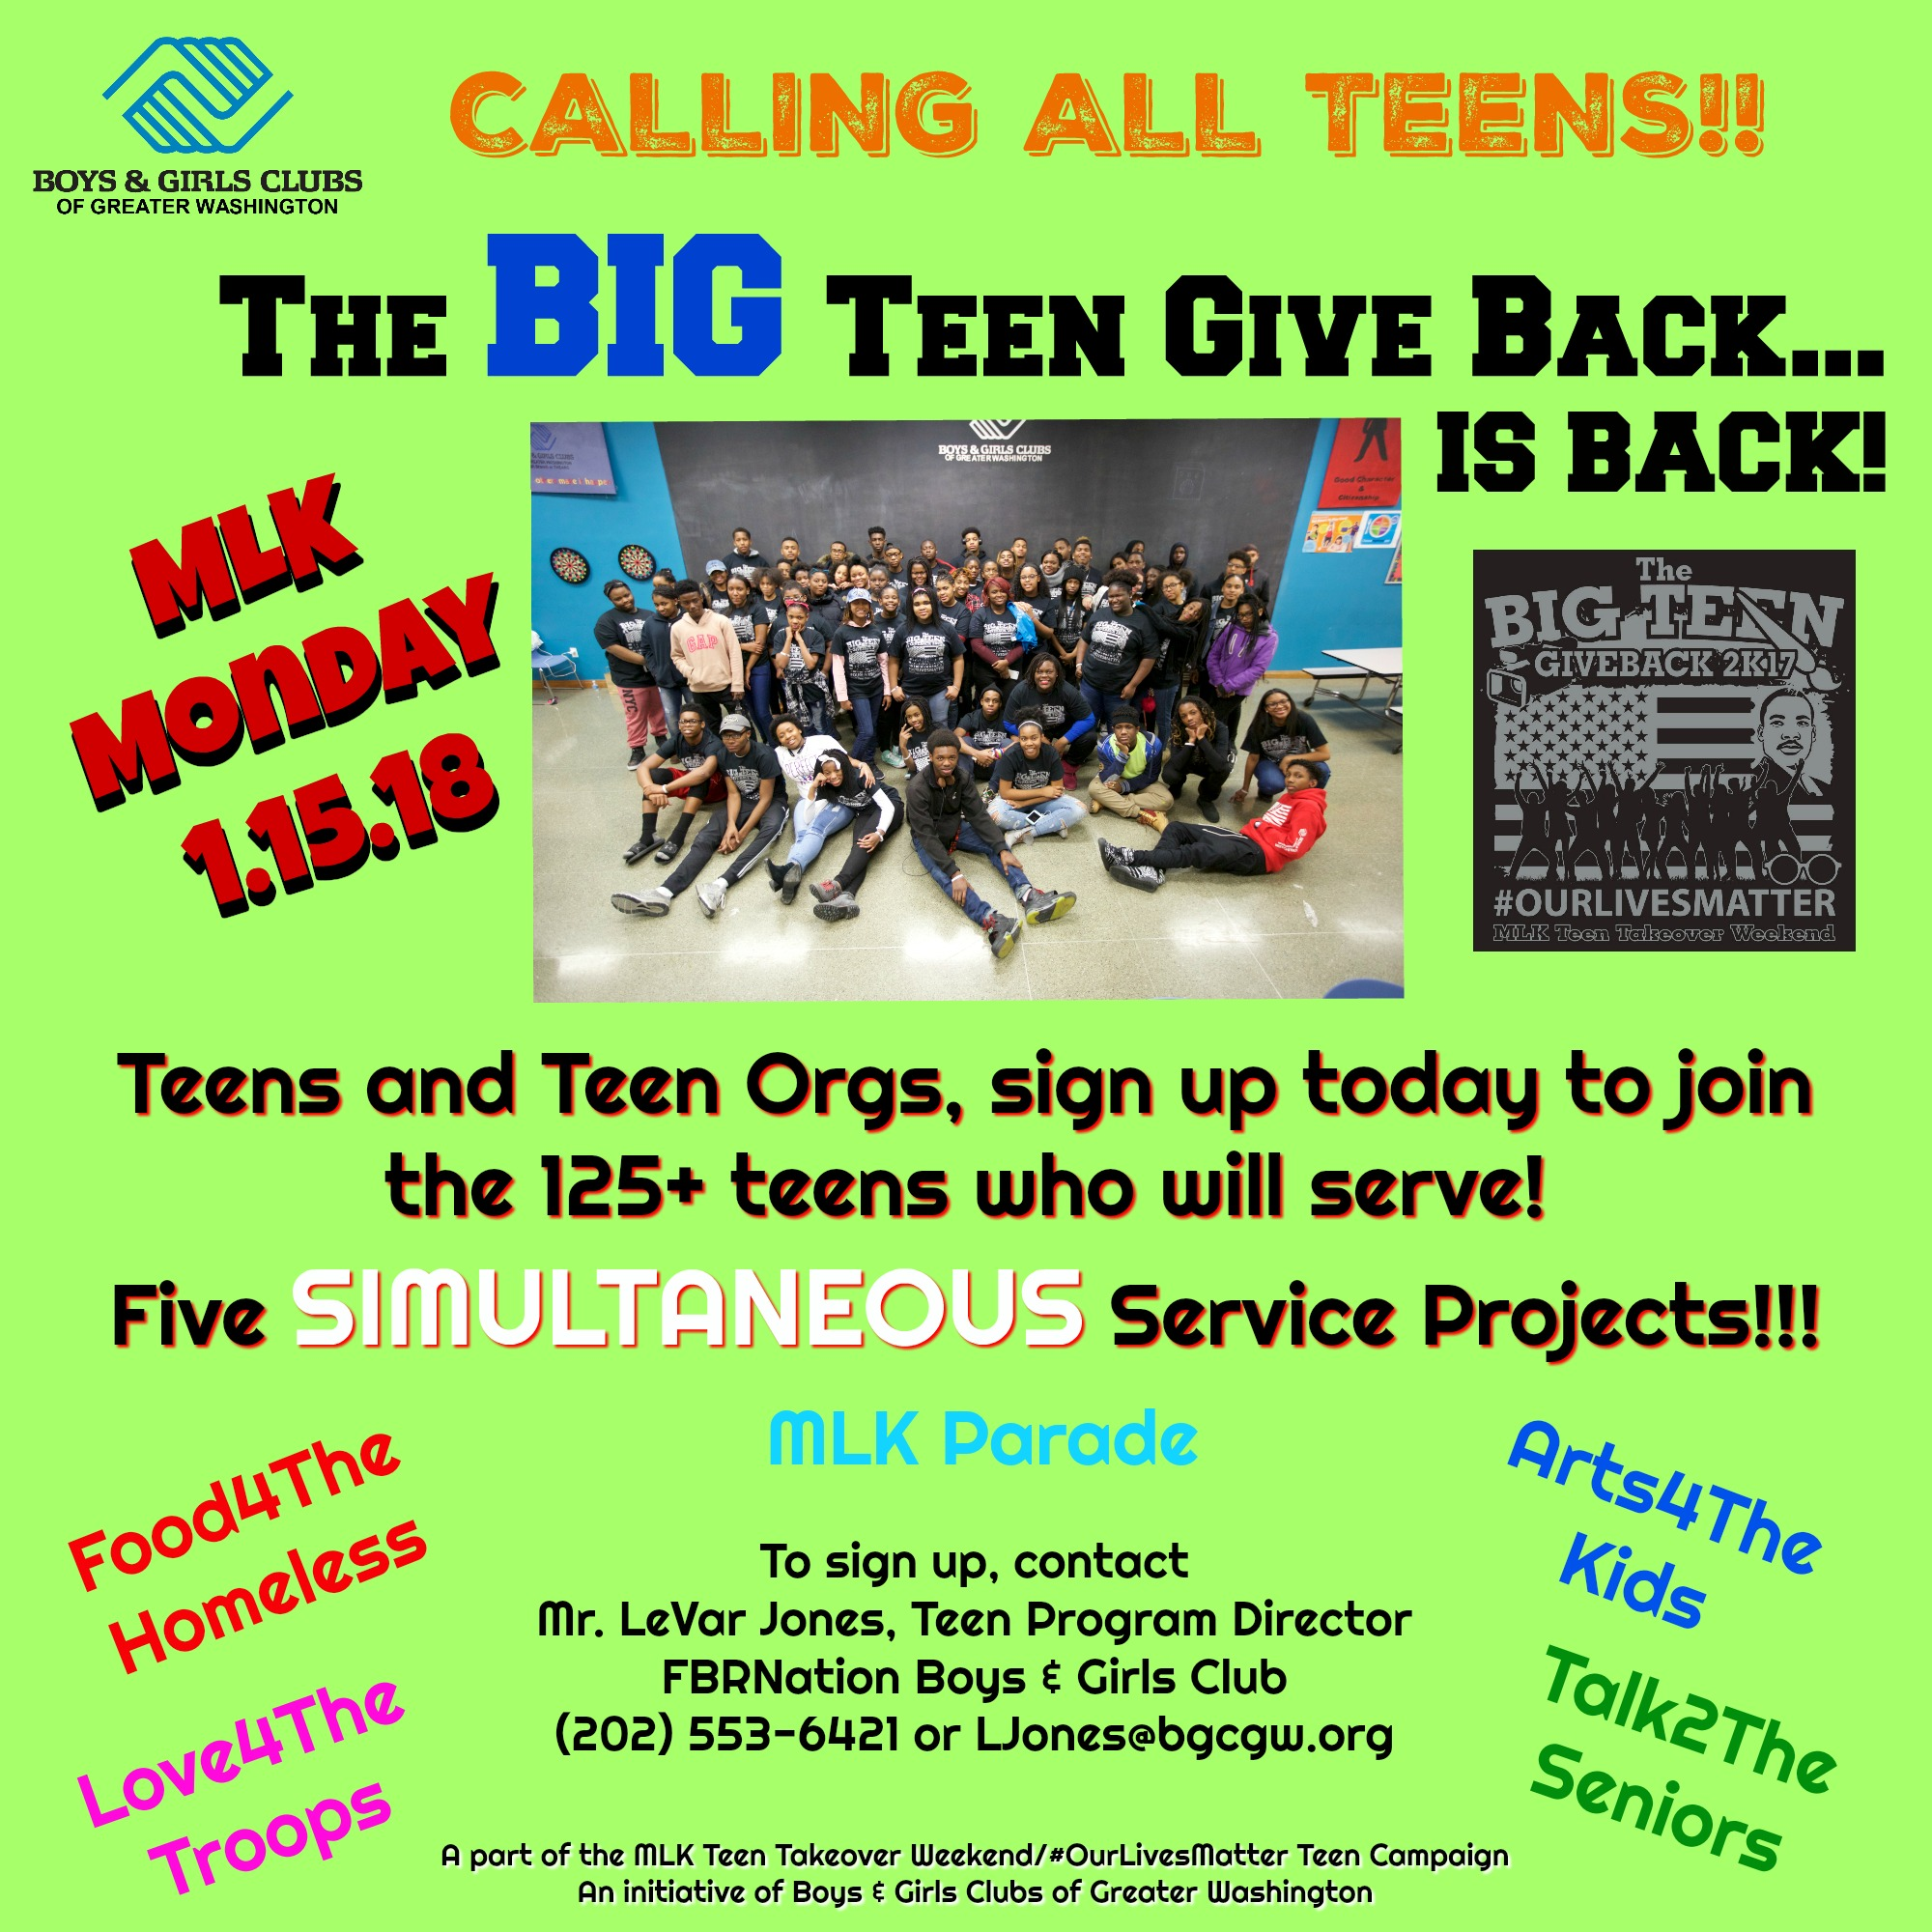 The Big Teen Give Back